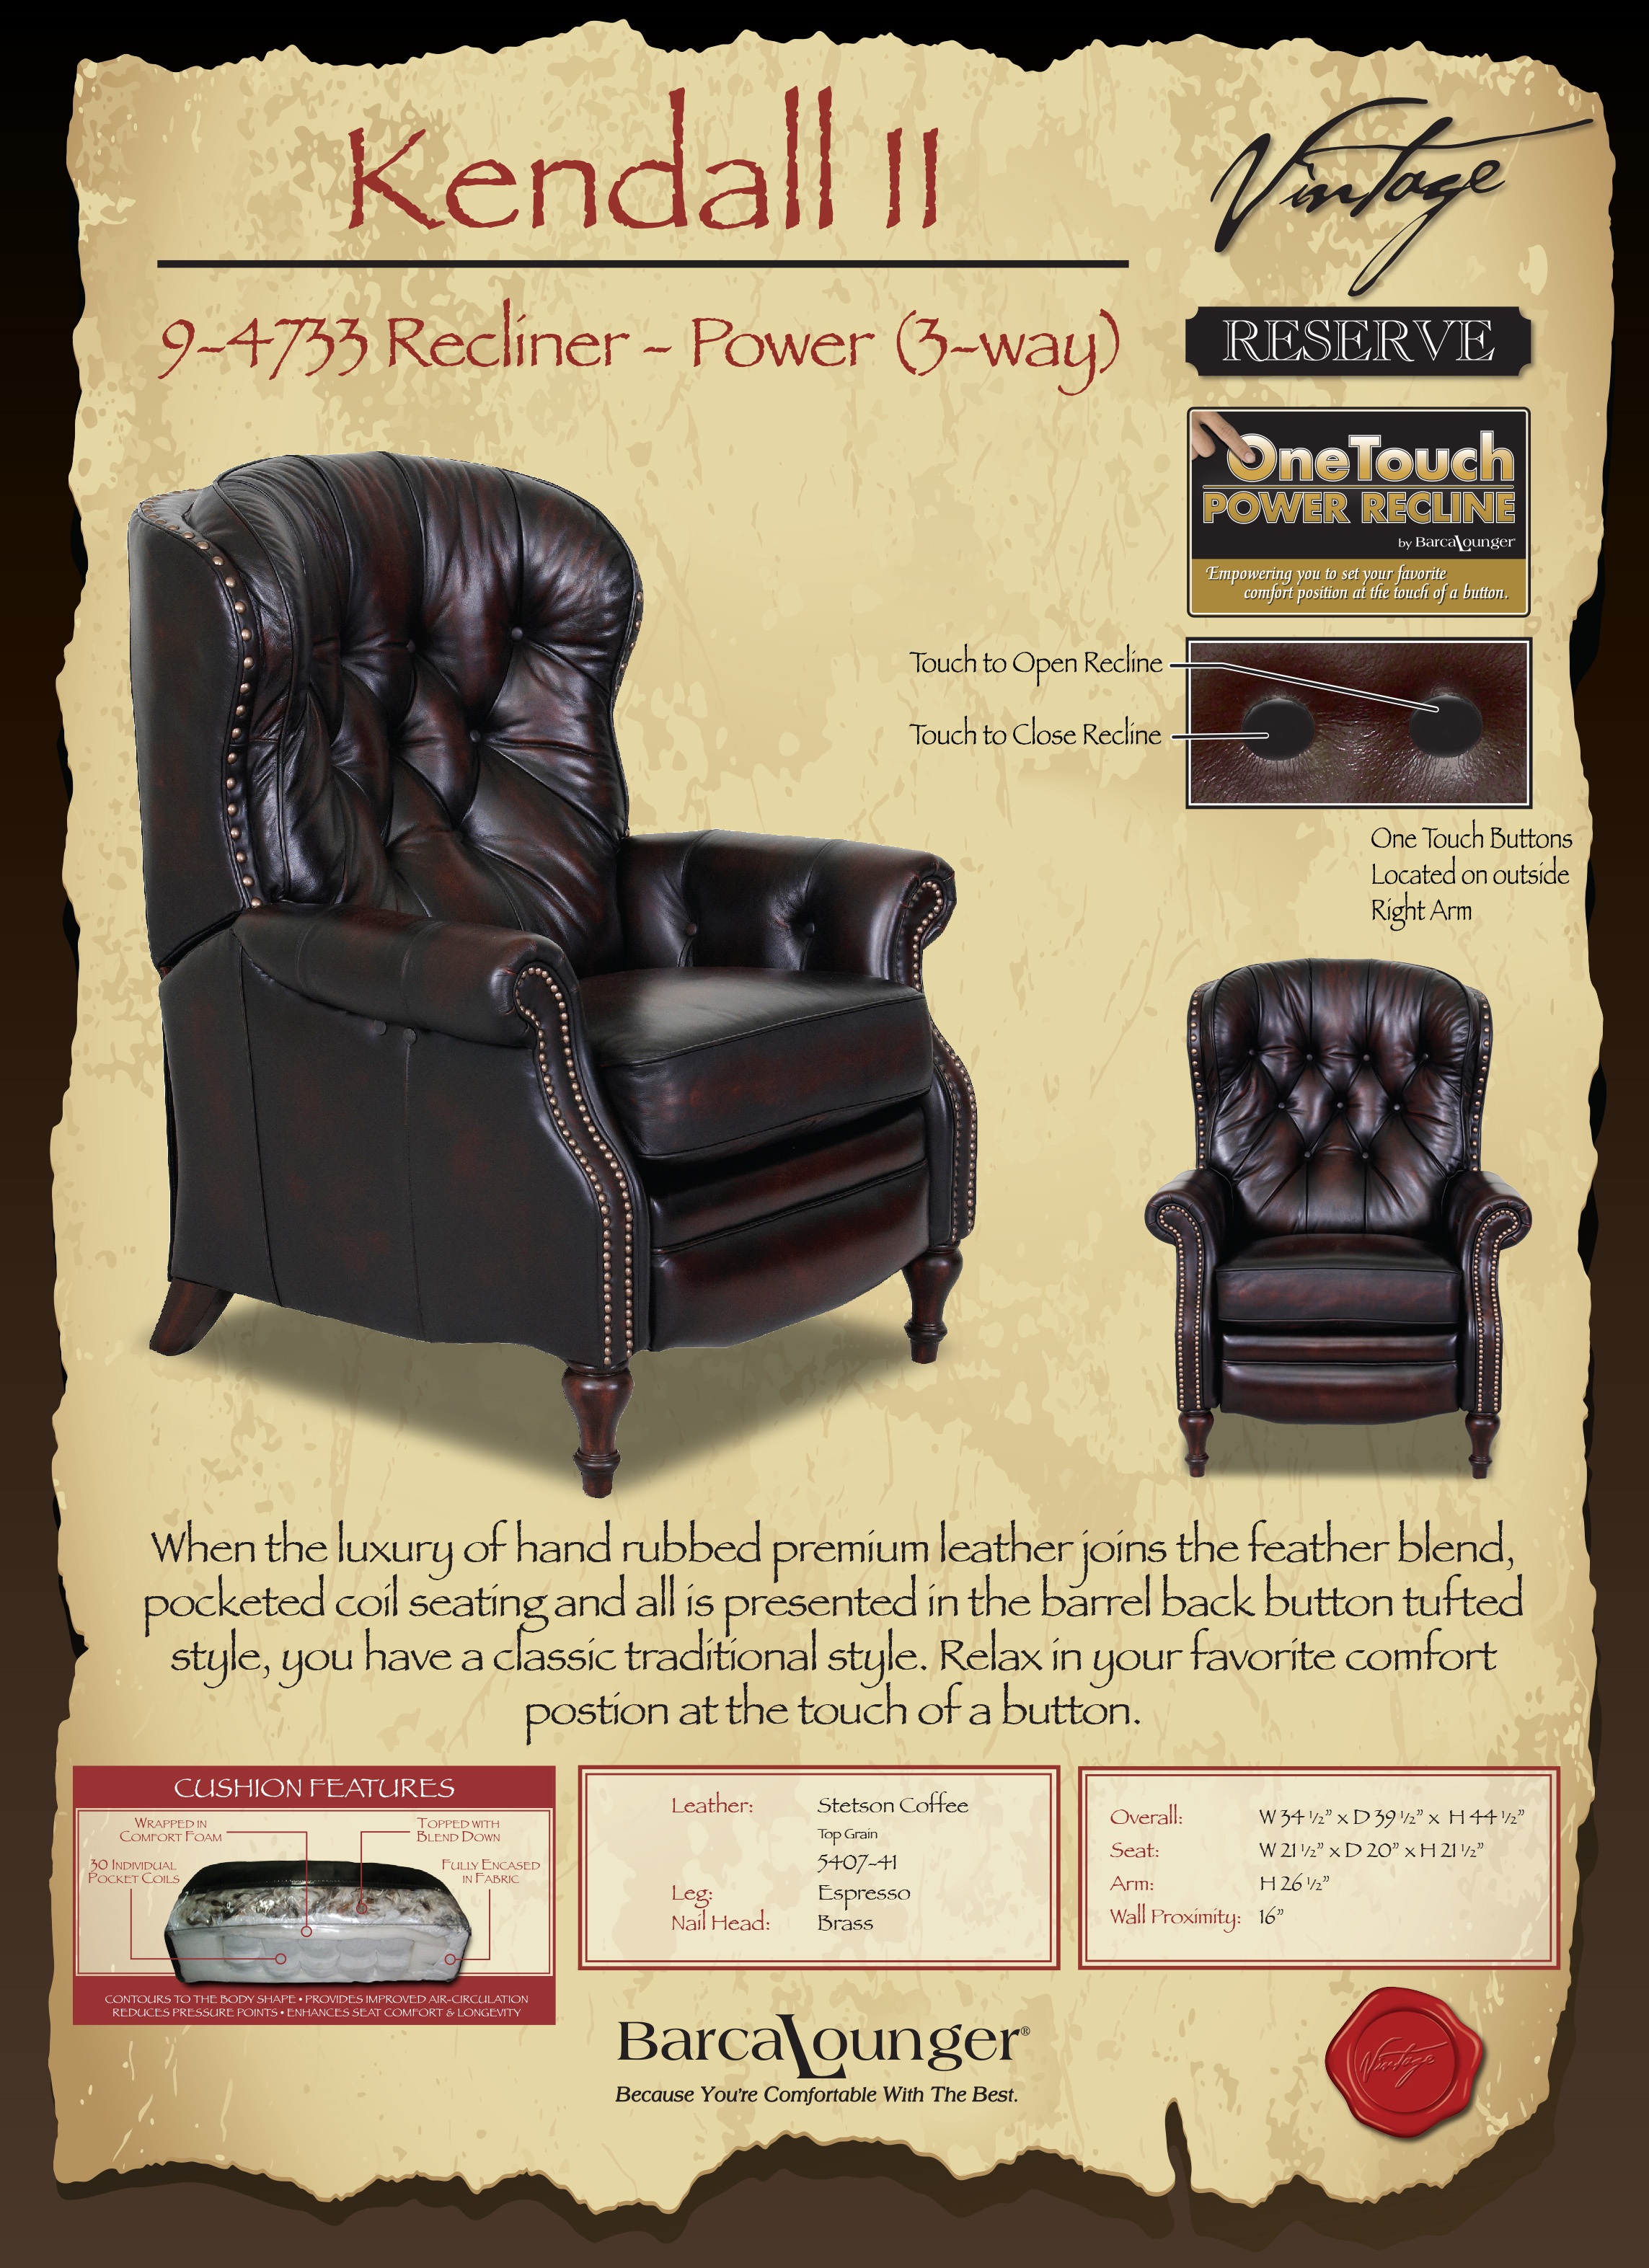 Barcalounger Kendall II Recliner Chair Colors : barcalounger sofa recliners - islam-shia.org